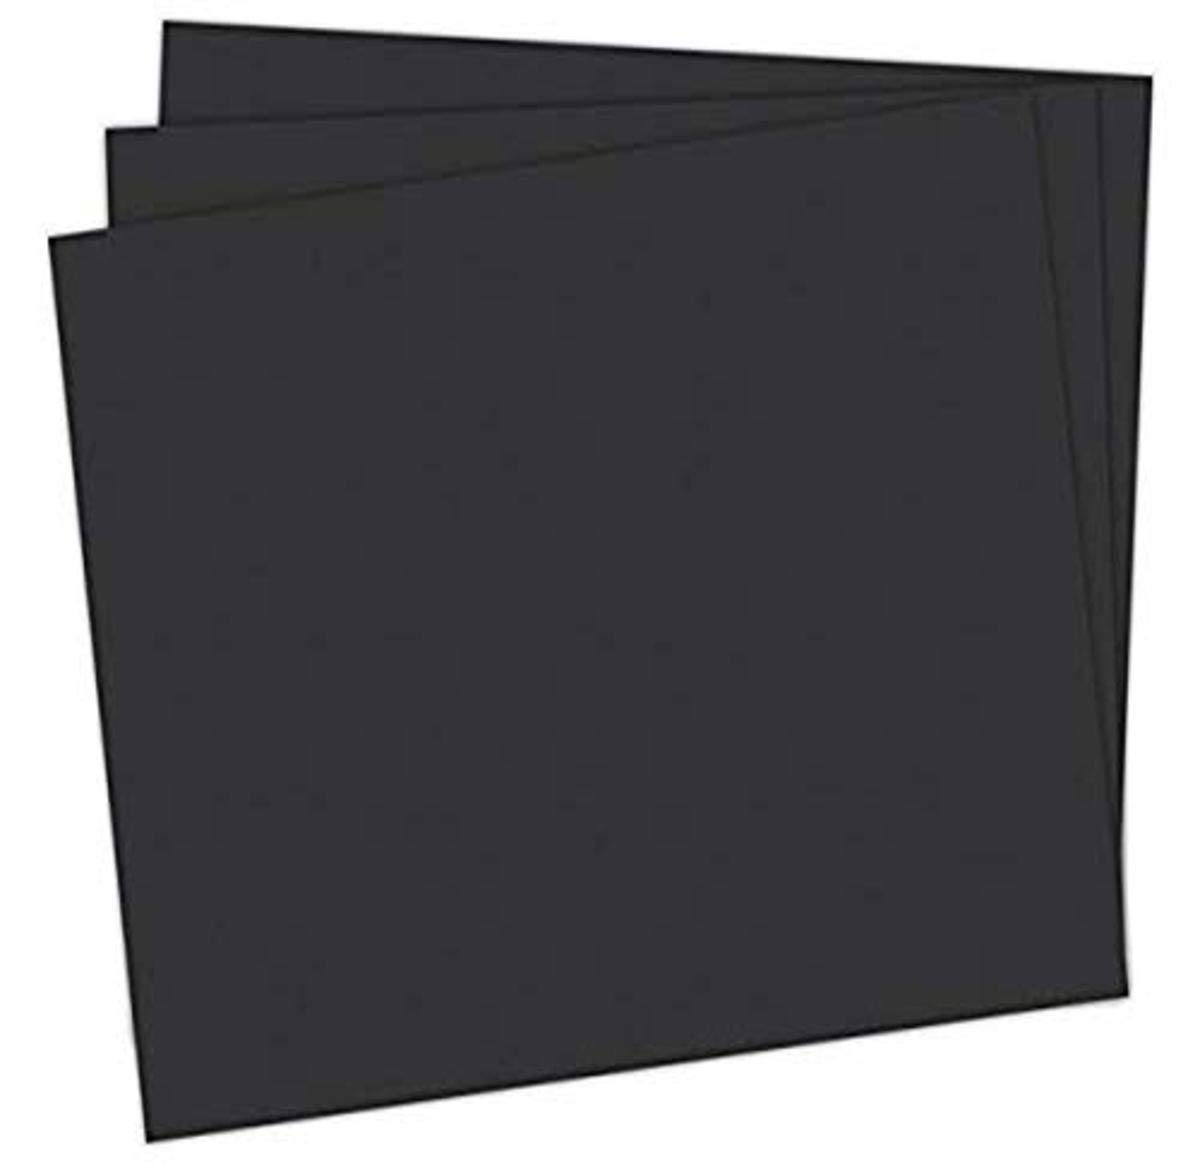 """School Smart 1485728 Railroad Board, 4-ply Thickness, 22"""" x 28"""", Black (Pack of 25)"""